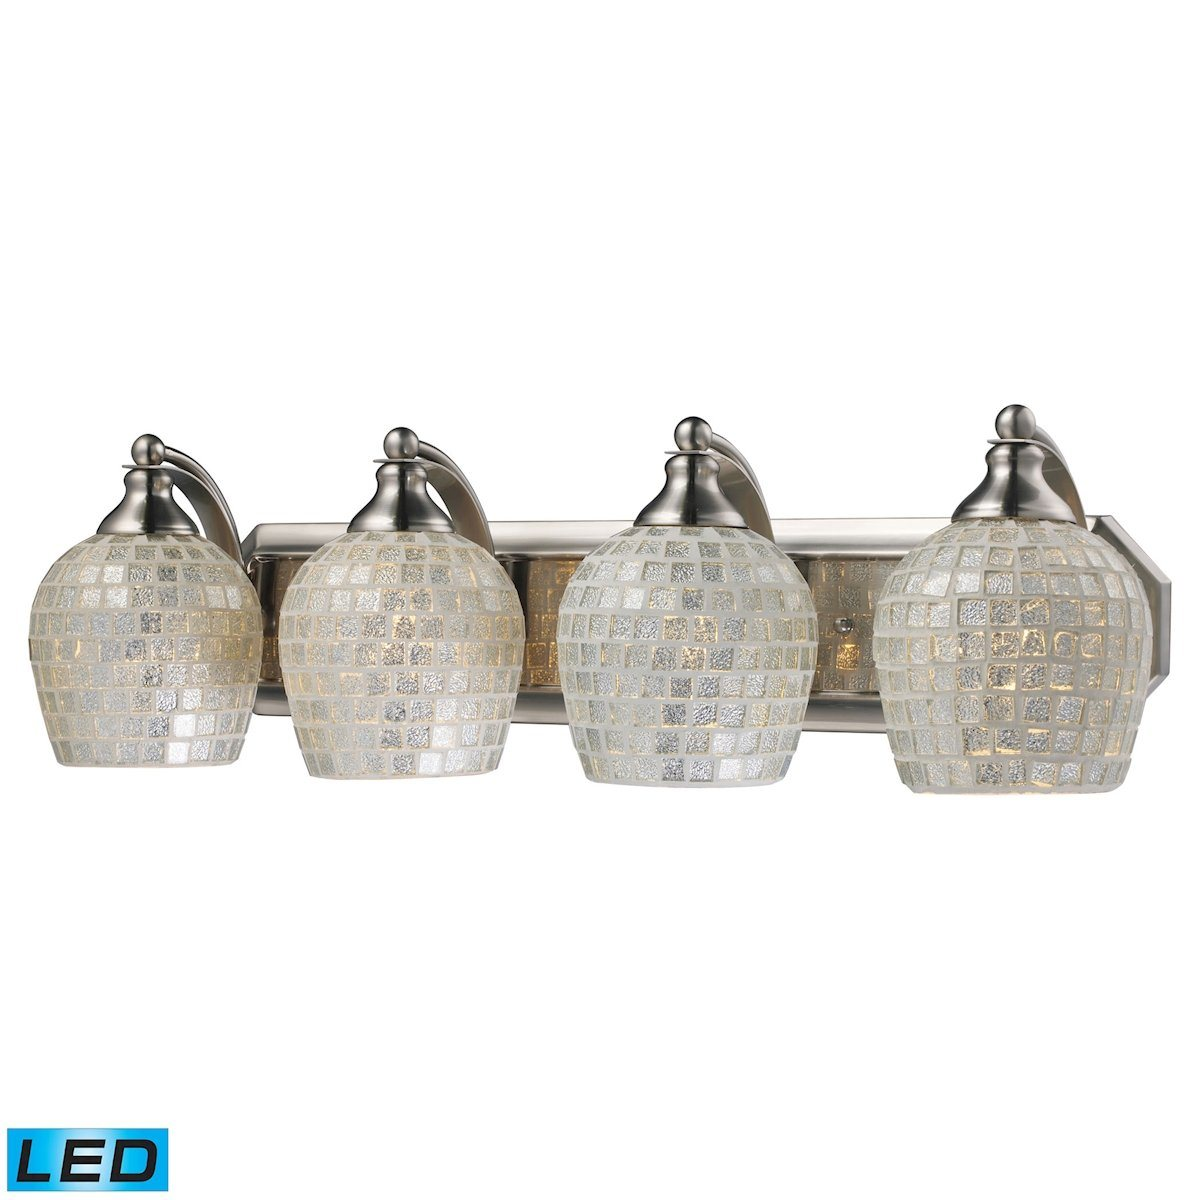 Bath And Spa 4 Light LED Vanity In Satin Nickel And Silver Glass Wall Elk Lighting